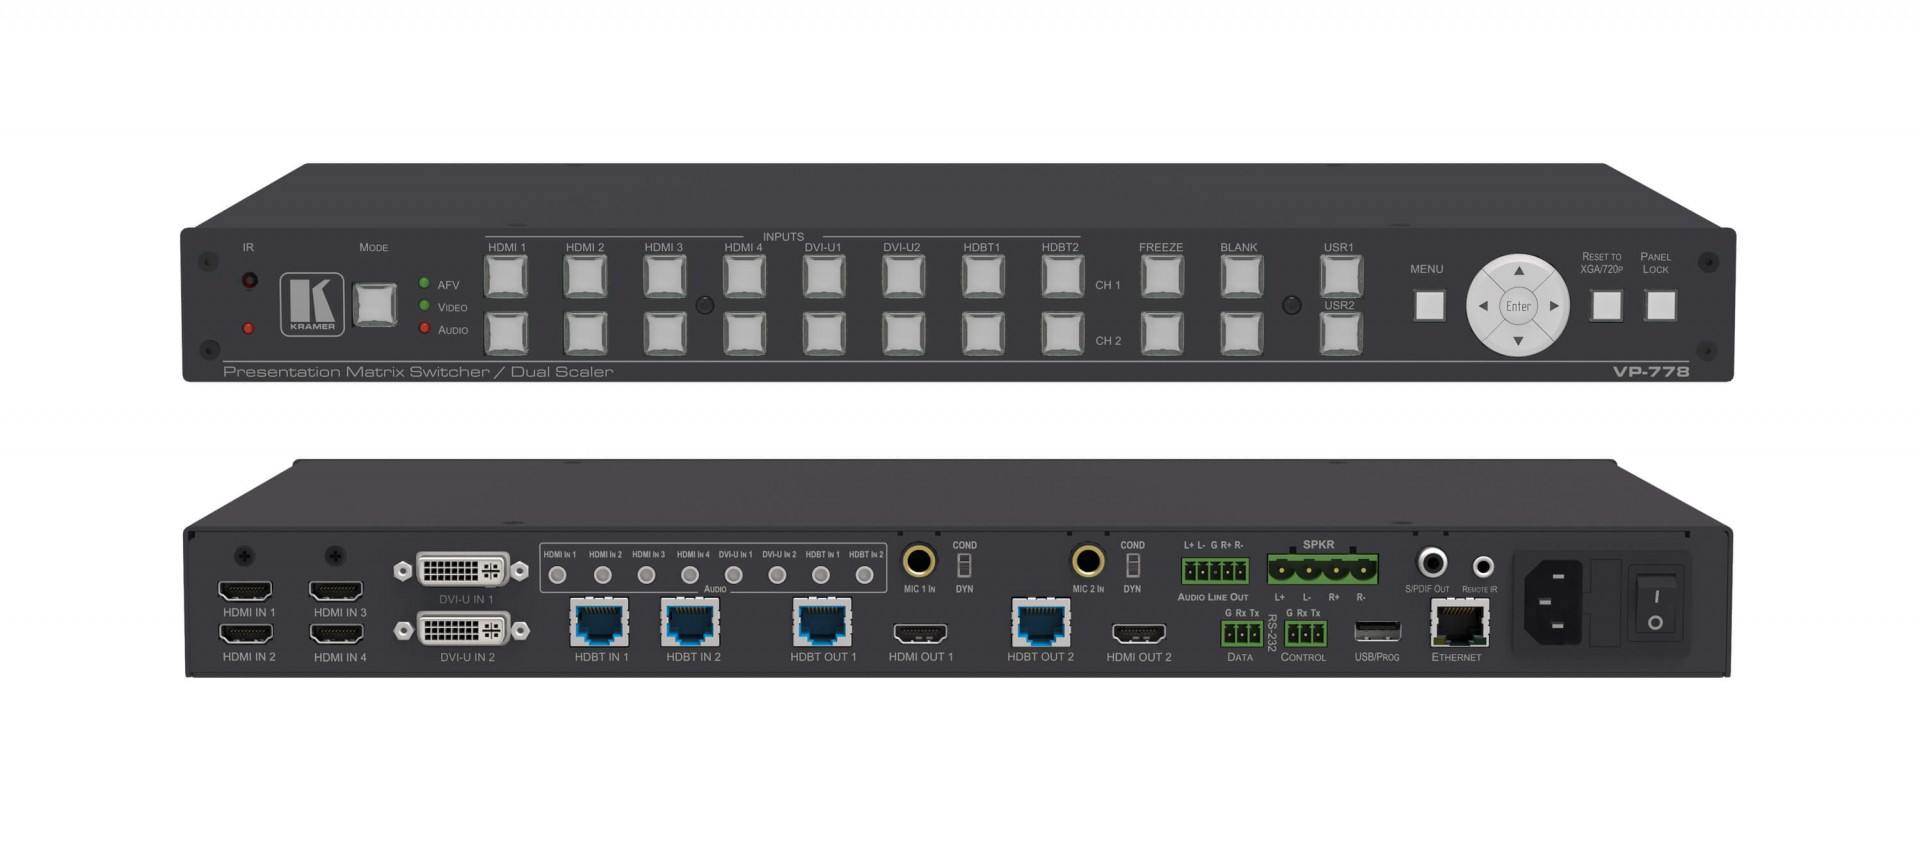 Kramer VP-778 8–Input Presentation Matrix Switcher/Scaler with Seamless Video Cuts and 4K30 Output Support